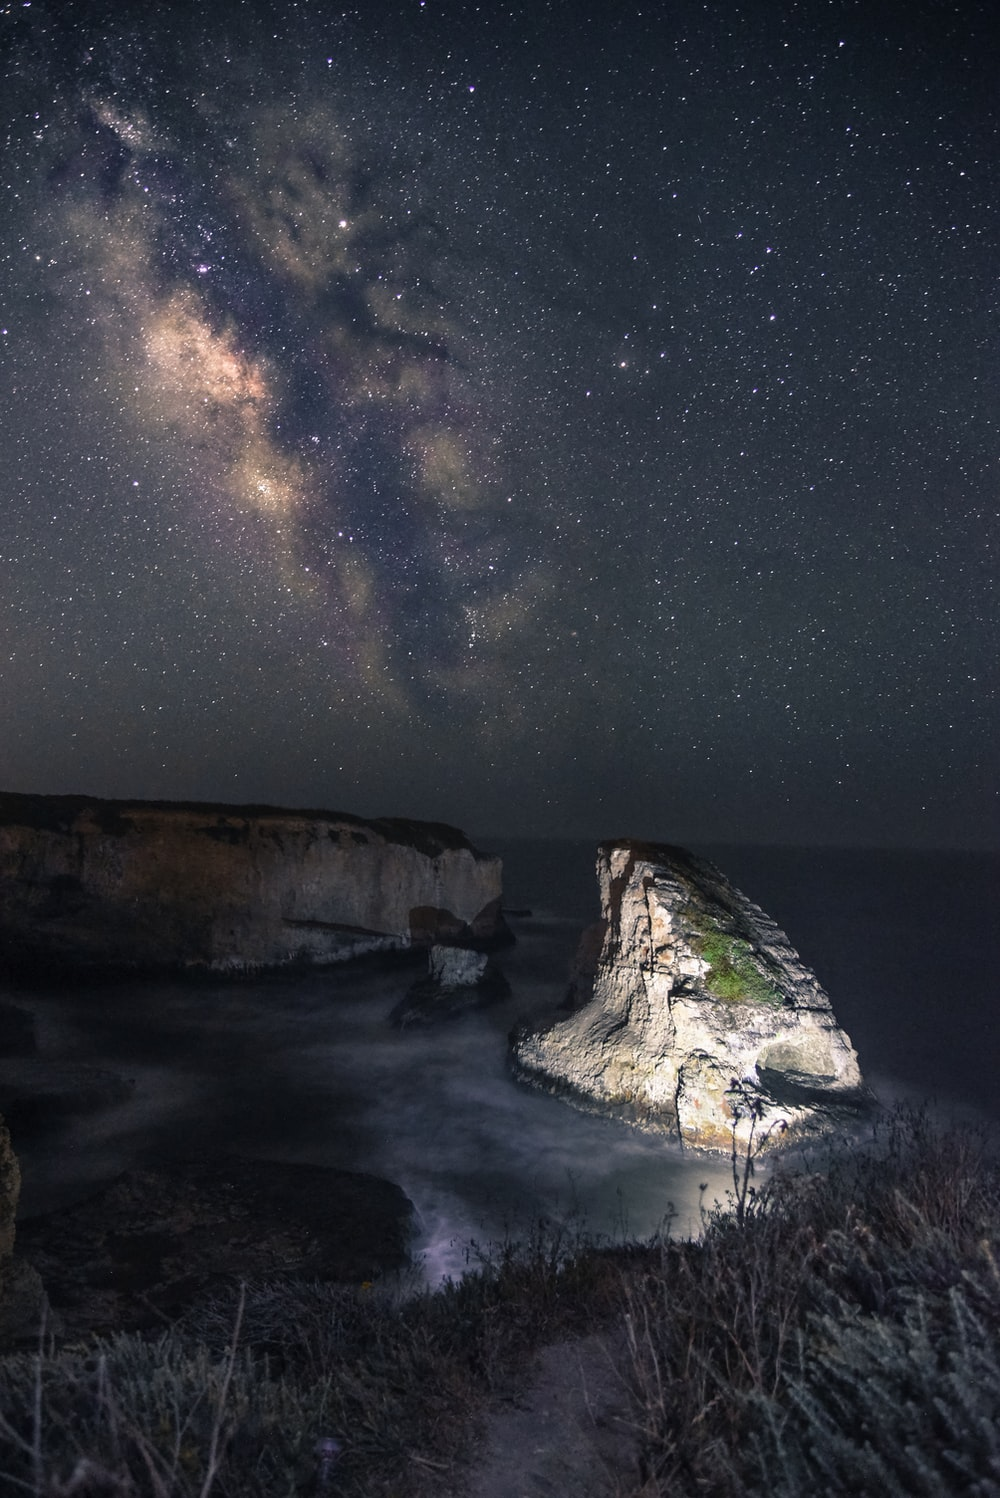 gray rock on body of water under stars